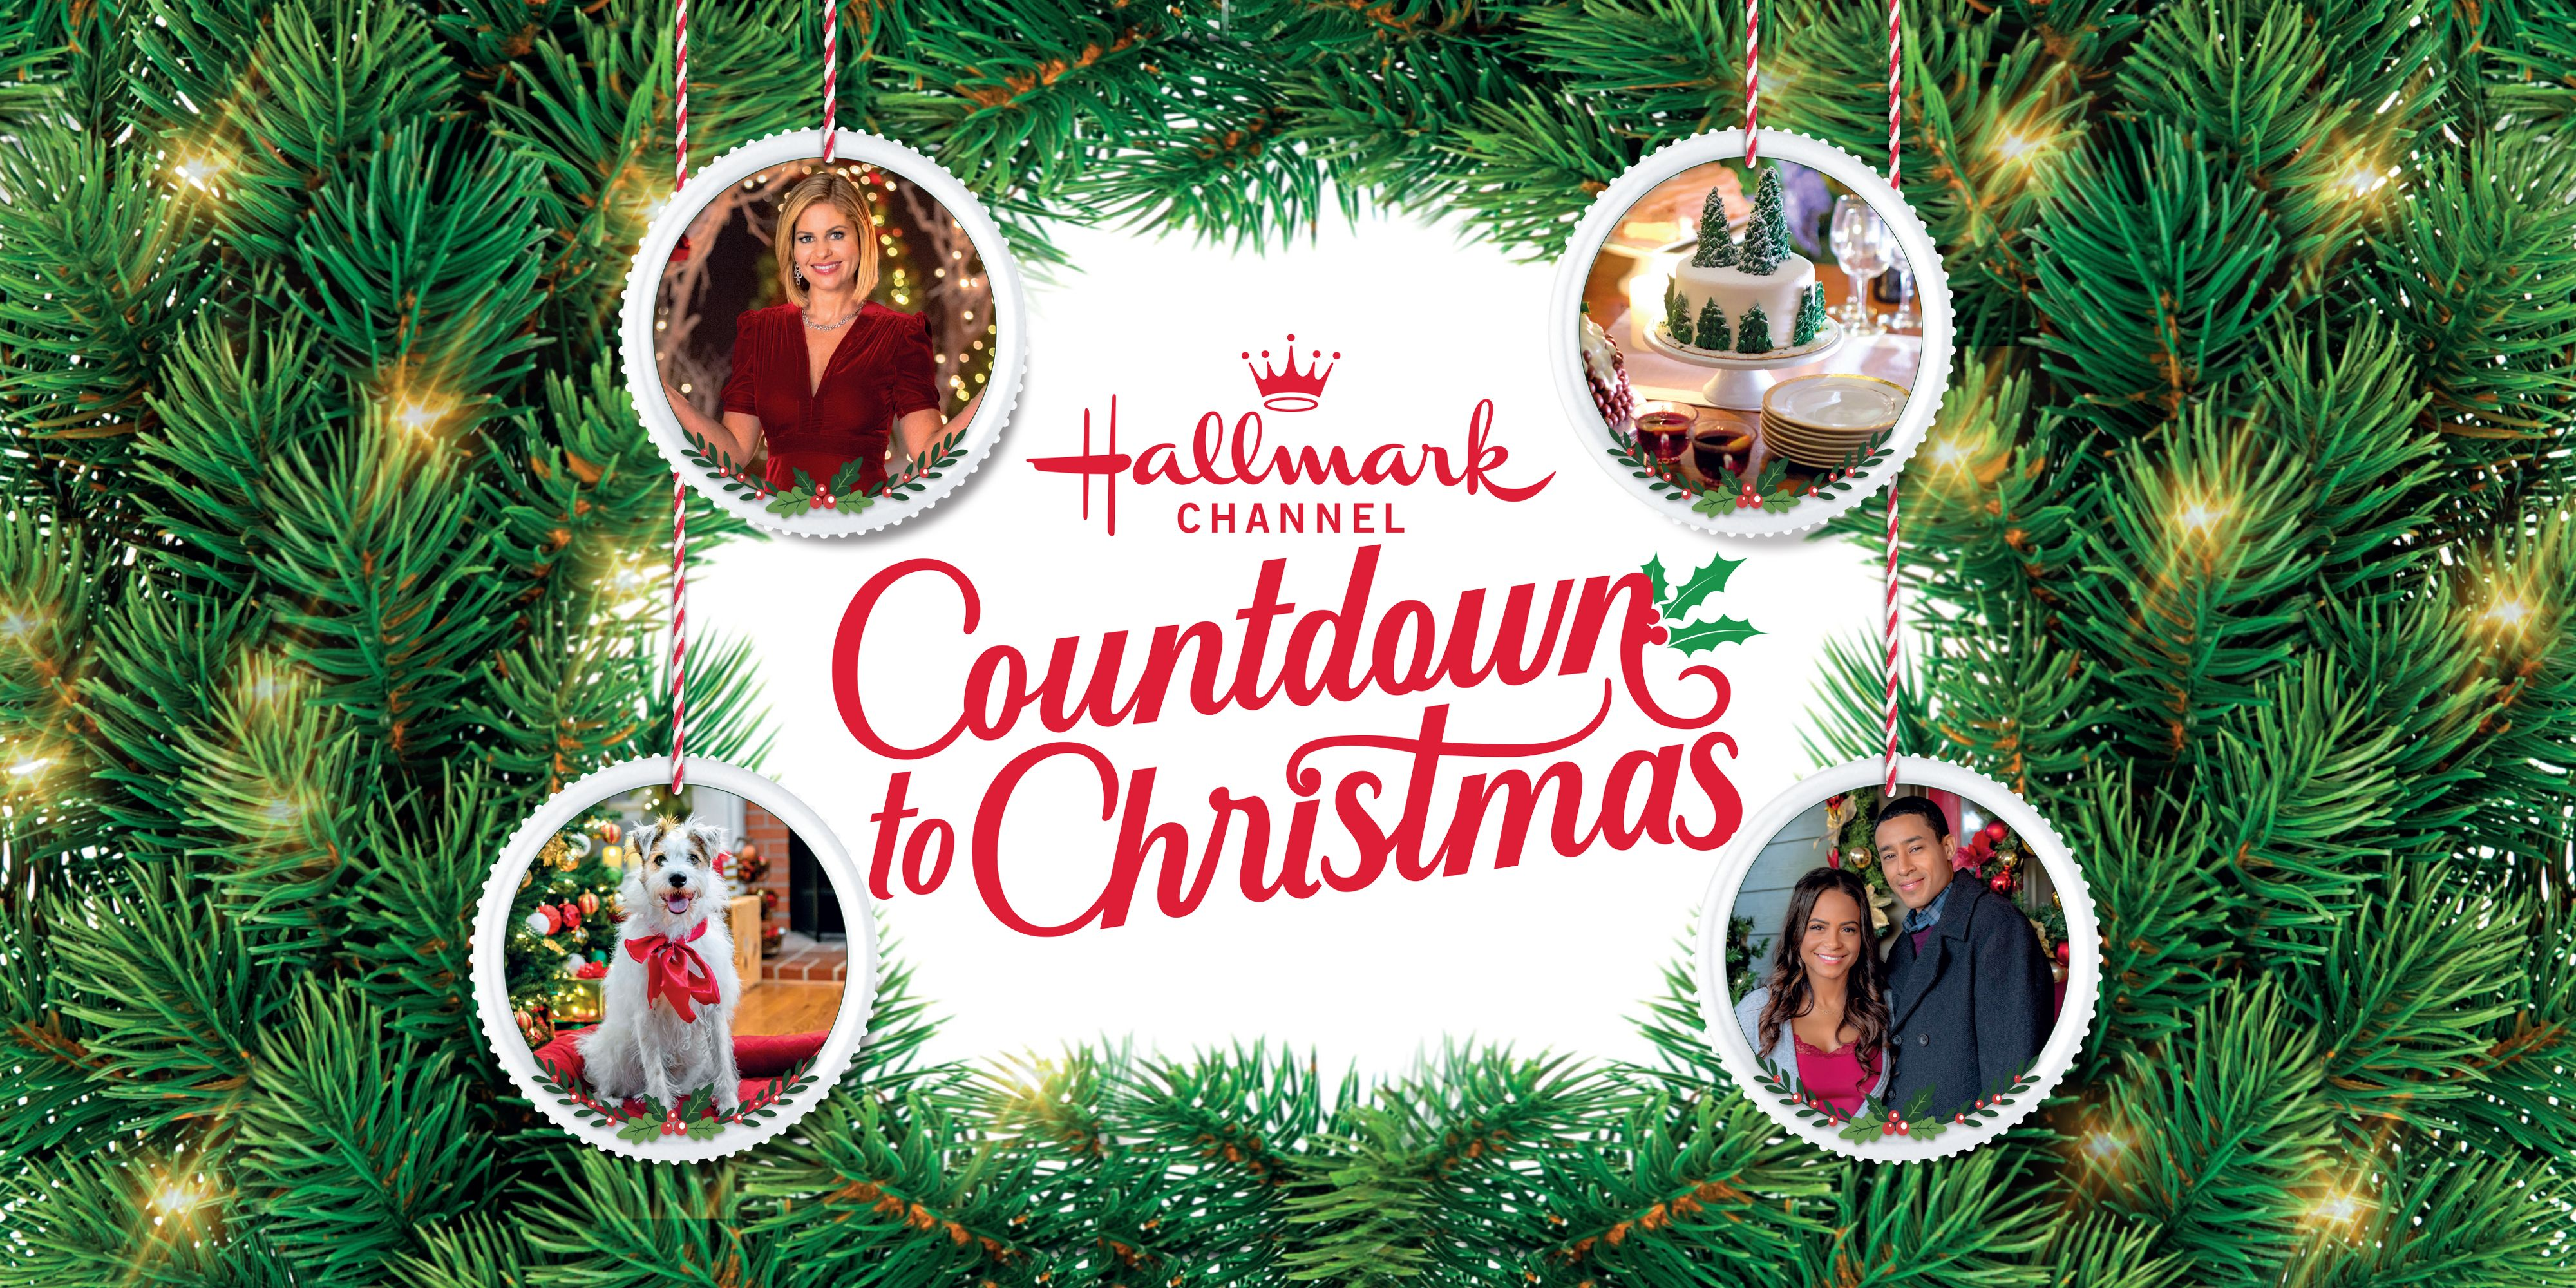 Countdown To Christmas 2020 Hllmark Order the Country Living Hallmark Channel Countdown to Christmas Book